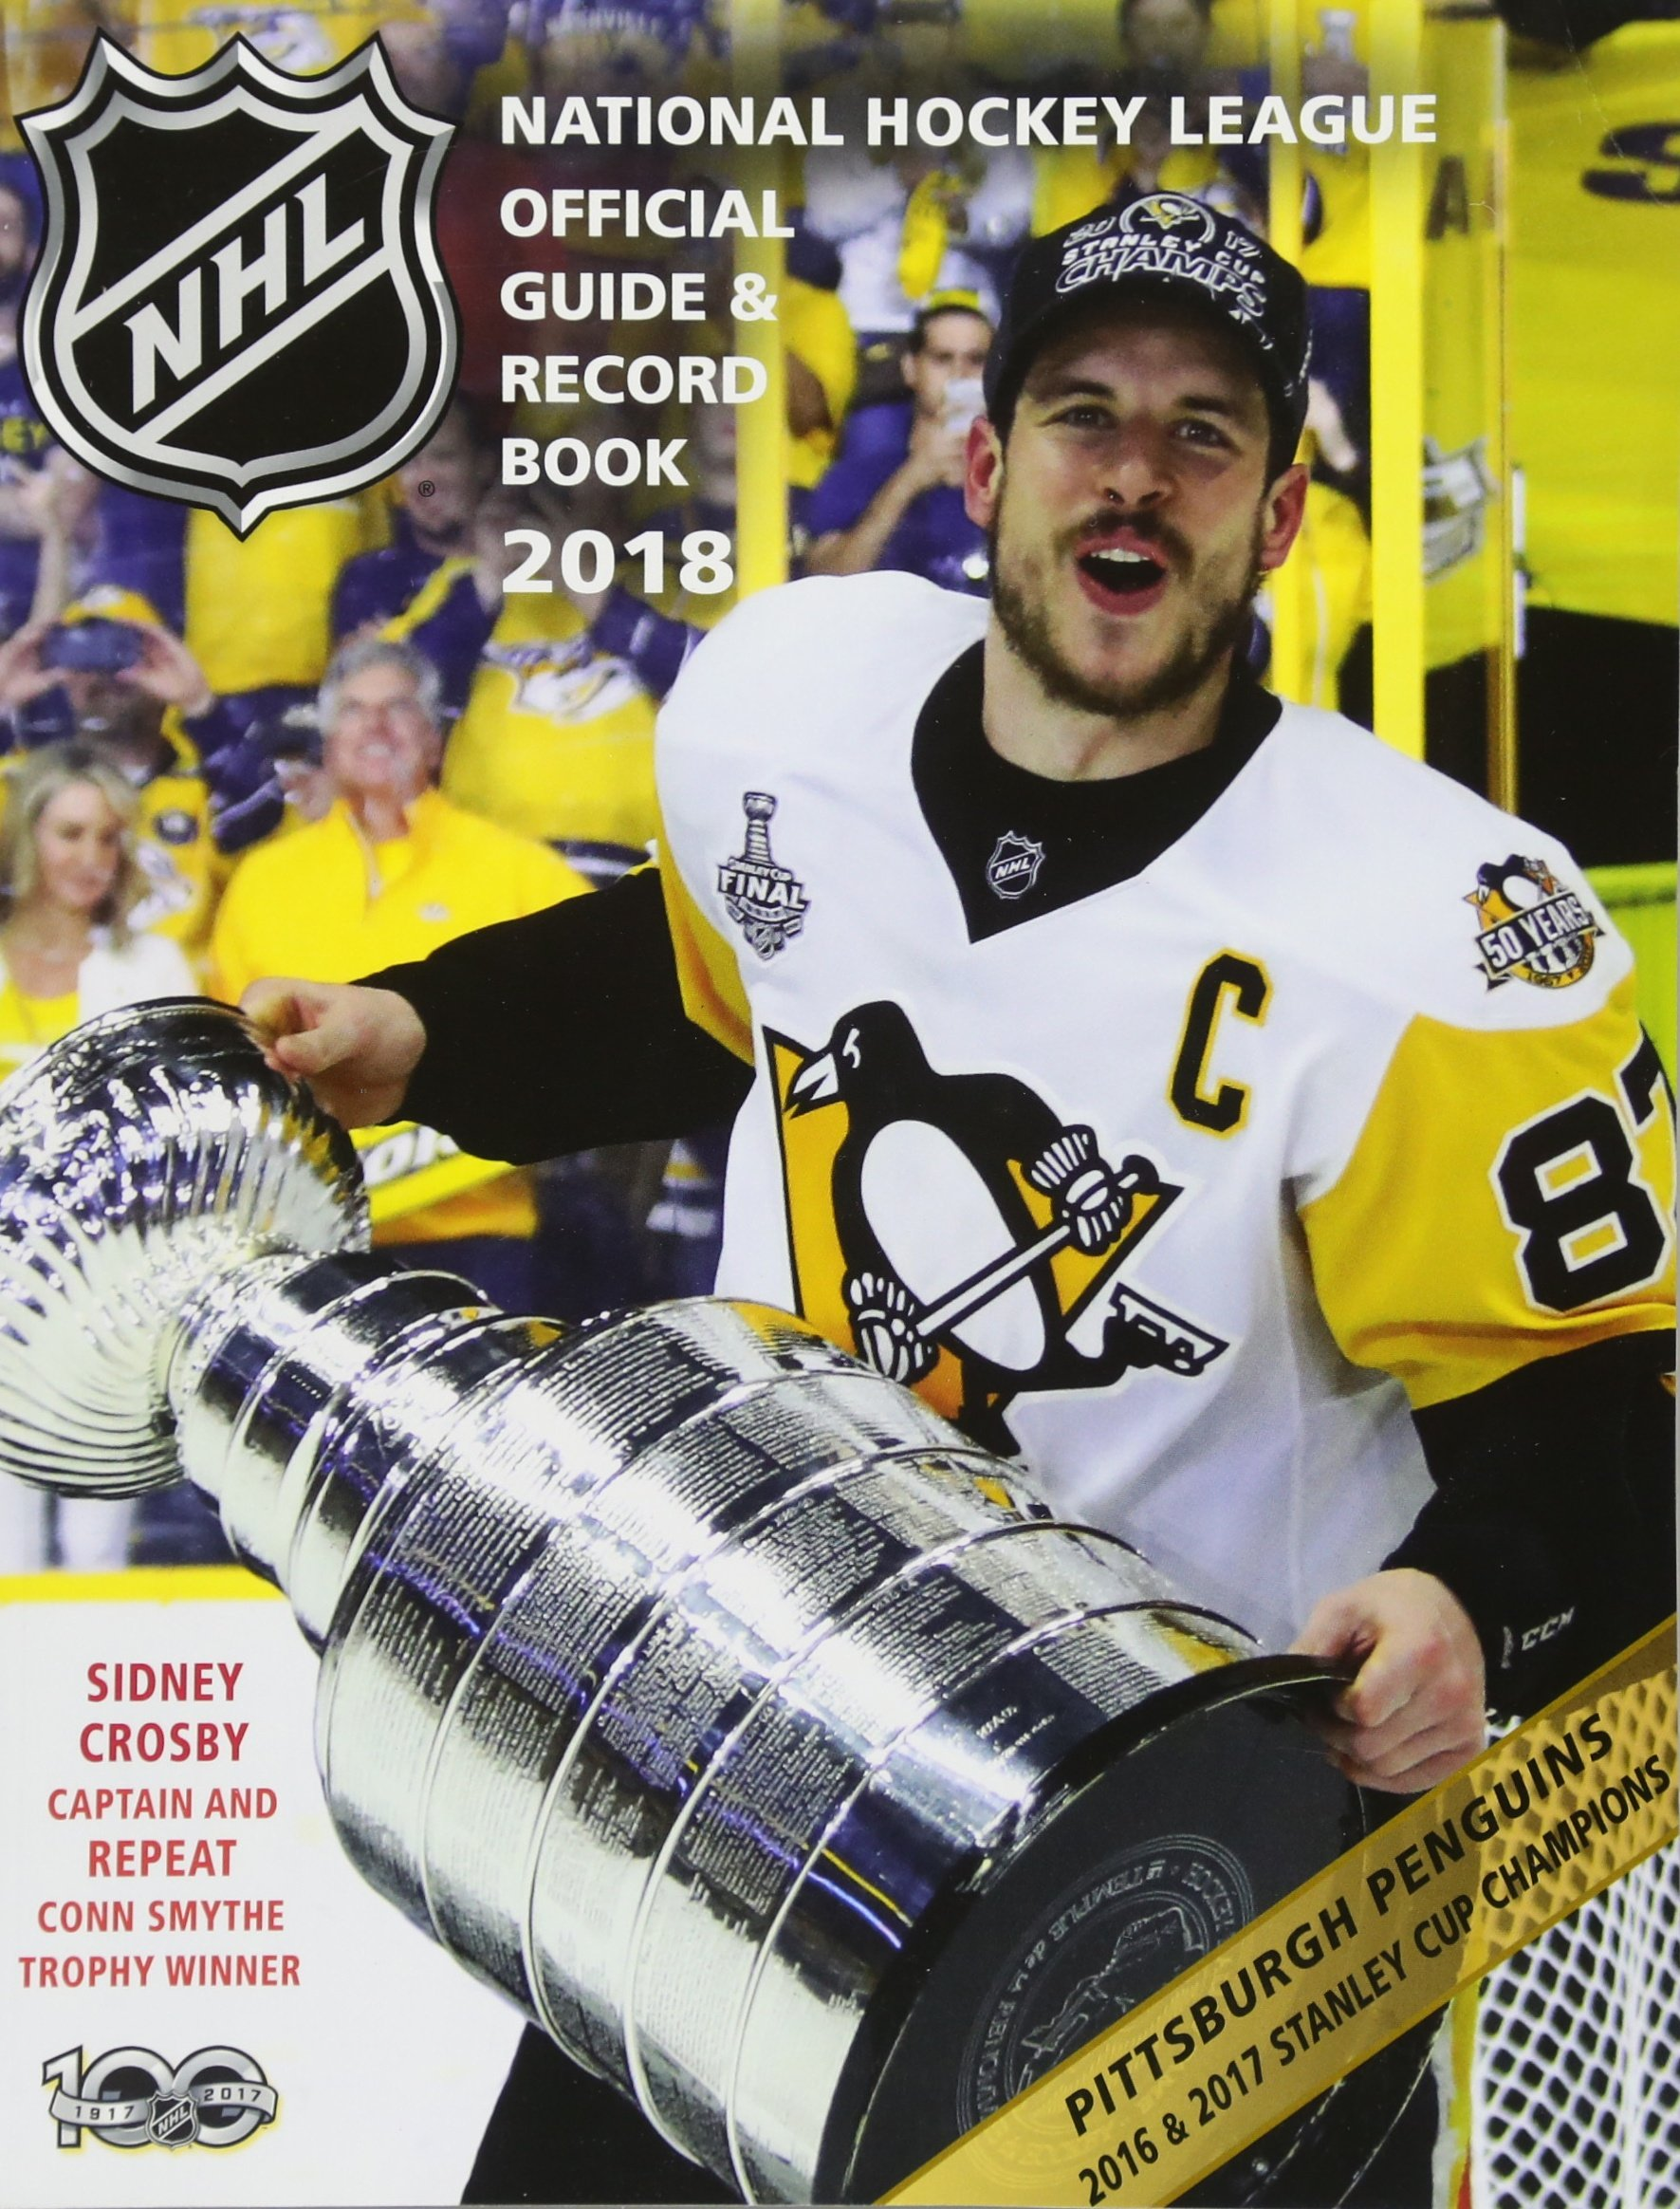 National Hockey League Official Guide Record Book 2018 National